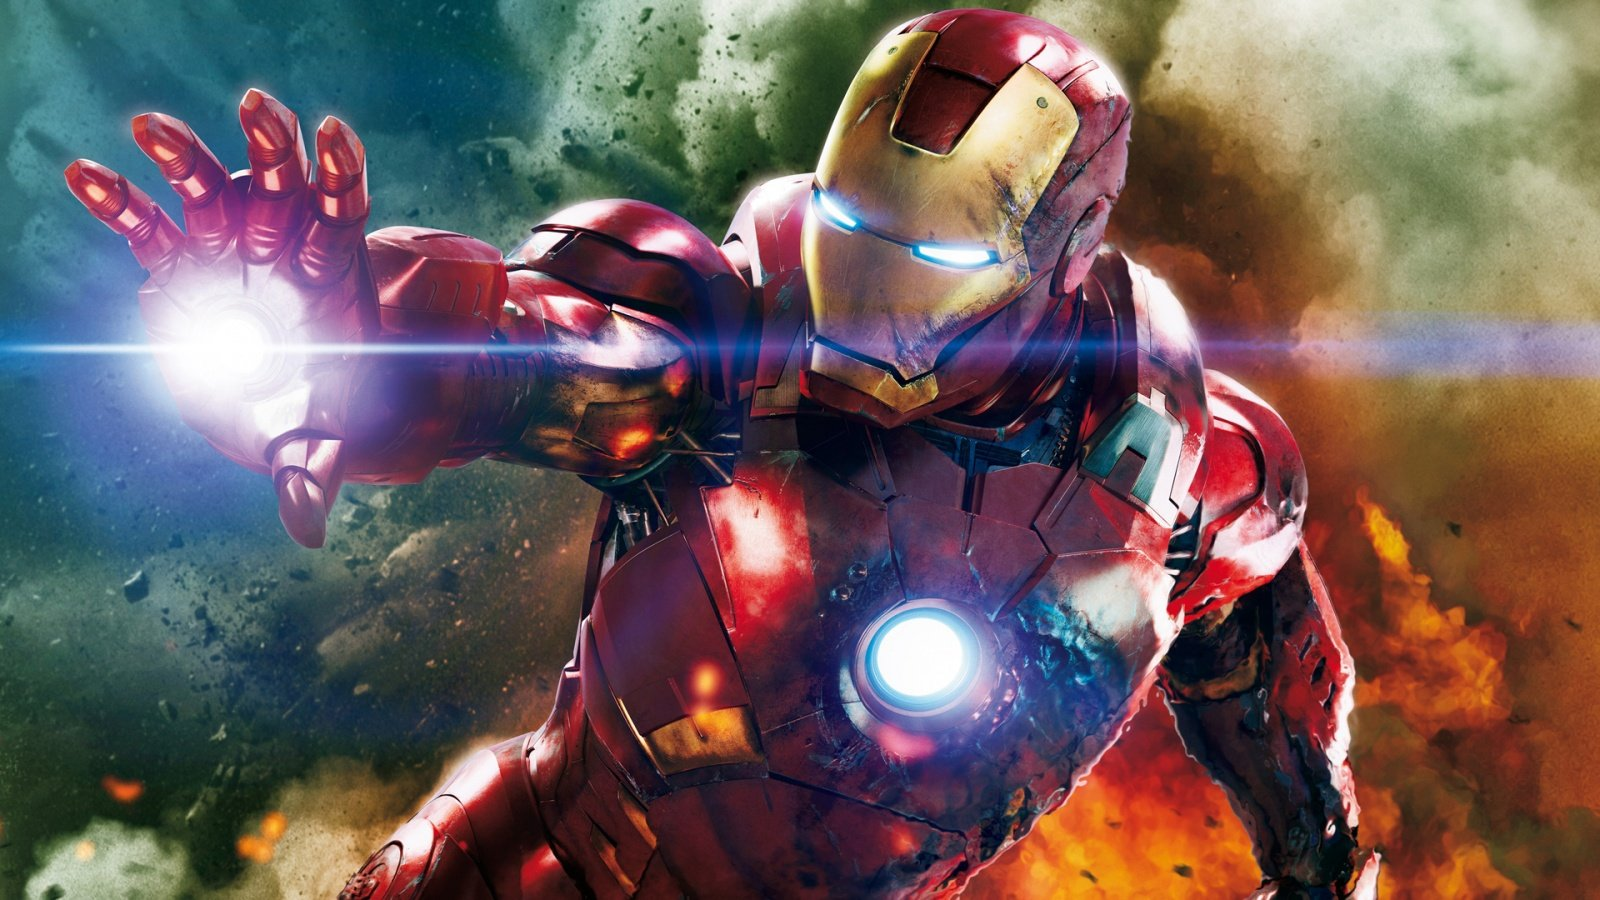 The Avengers Iron Man Wallpapers HD Wallpapers 1600x900